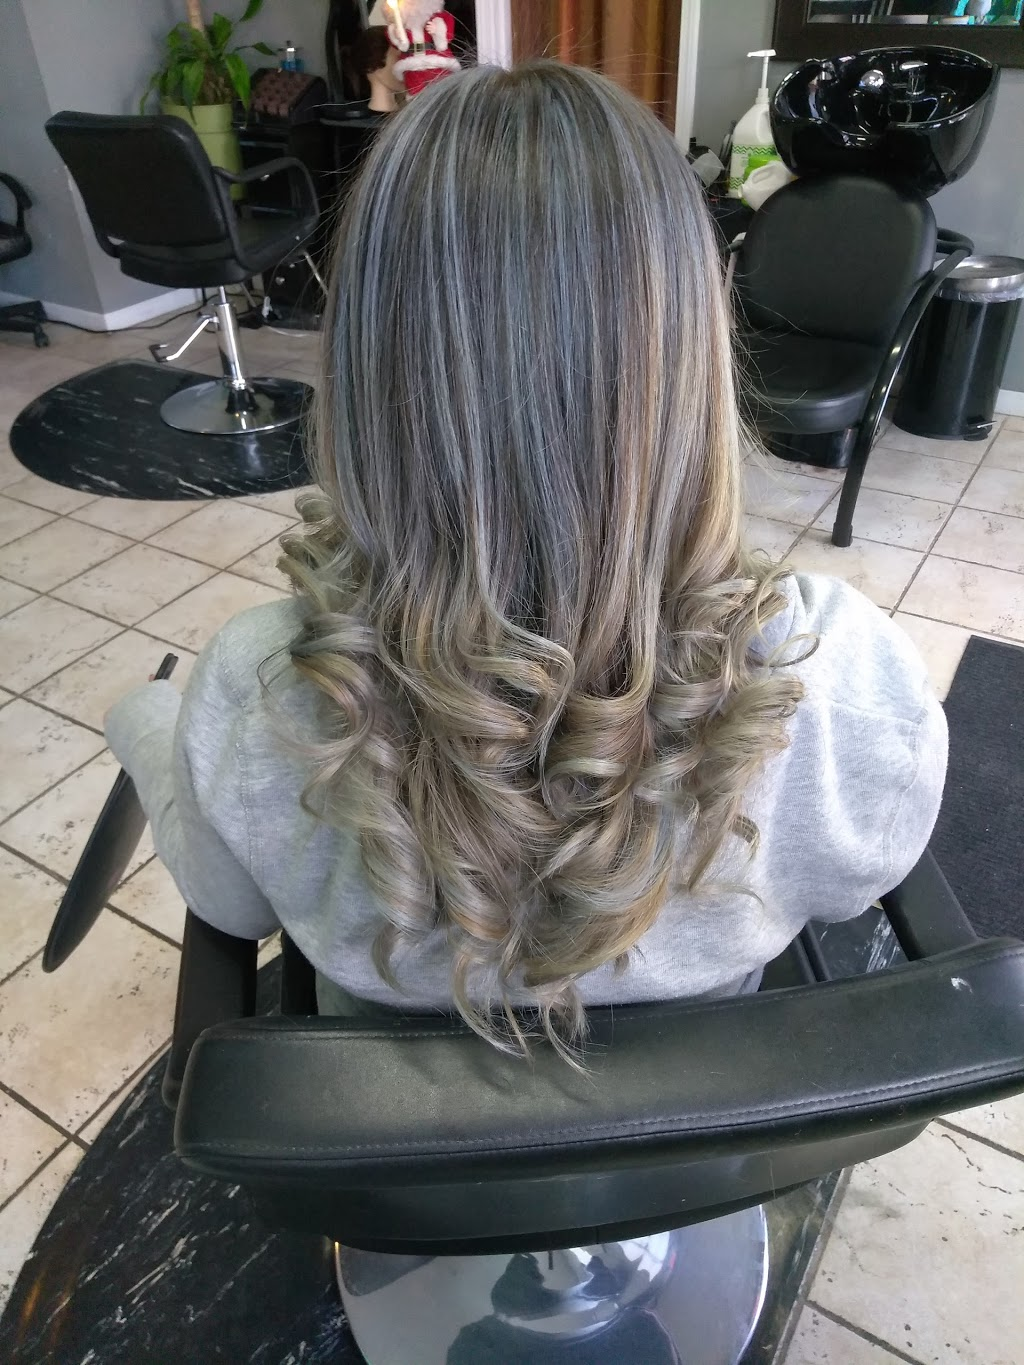 Emerge beauty by Enrique - hair care  | Photo 8 of 10 | Address: 1401 S 49th Ct, Cicero, IL 60804, USA | Phone: (773) 557-3525